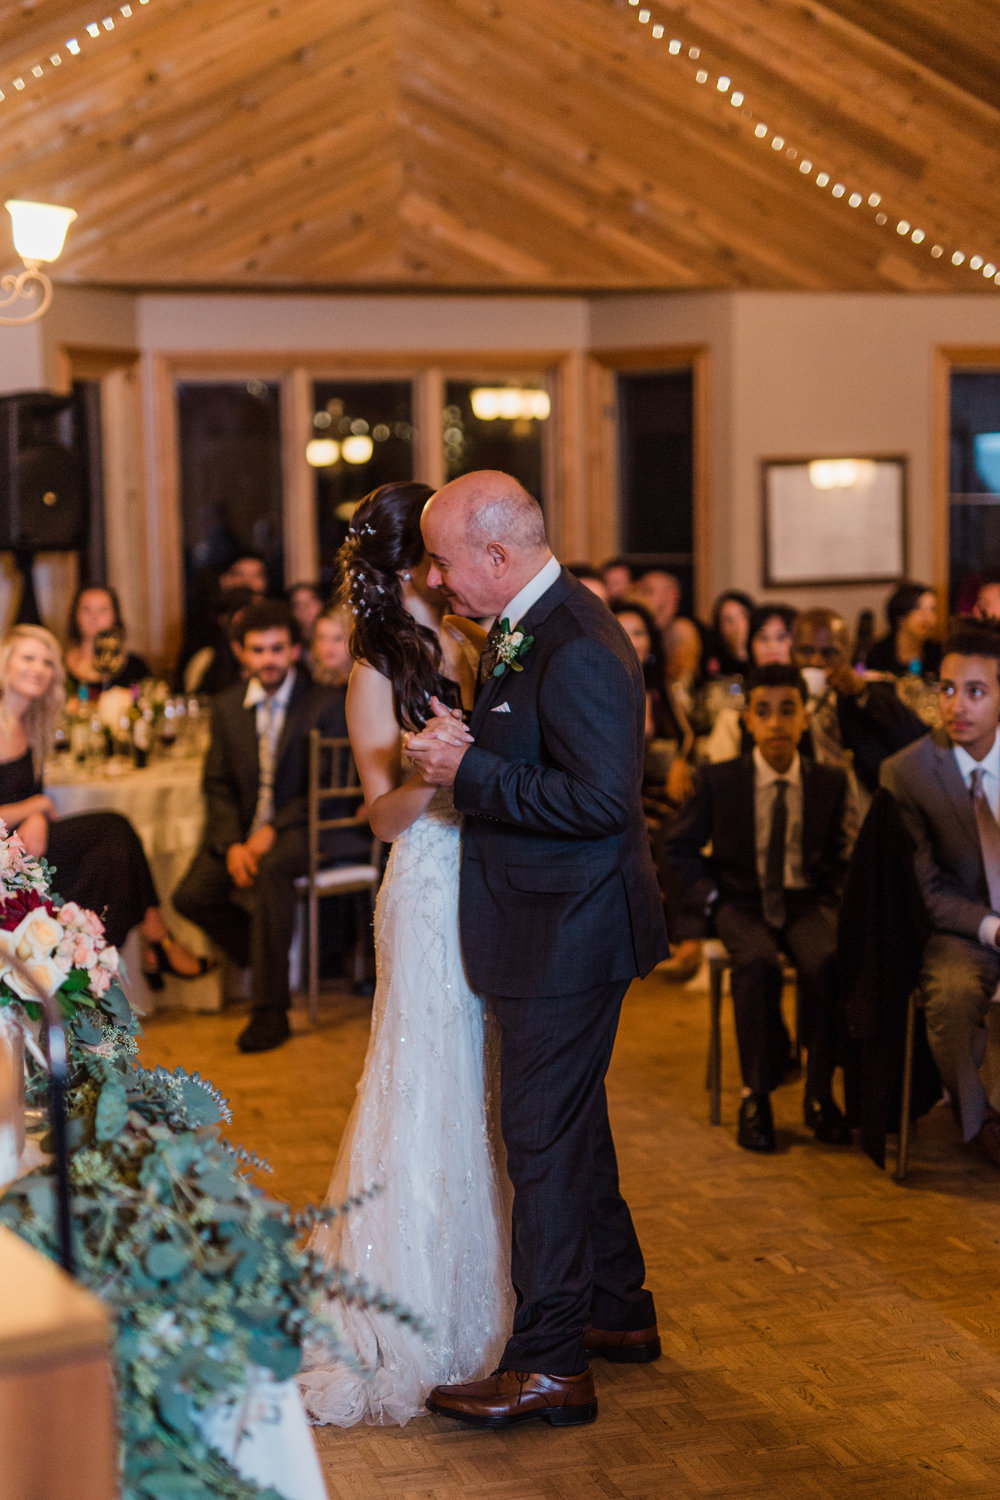 Amir-Golbazi-Danielle-Giroux-Photography_Toronto-Wedding_Cedarwood_Rachel-Paul_727.jpg